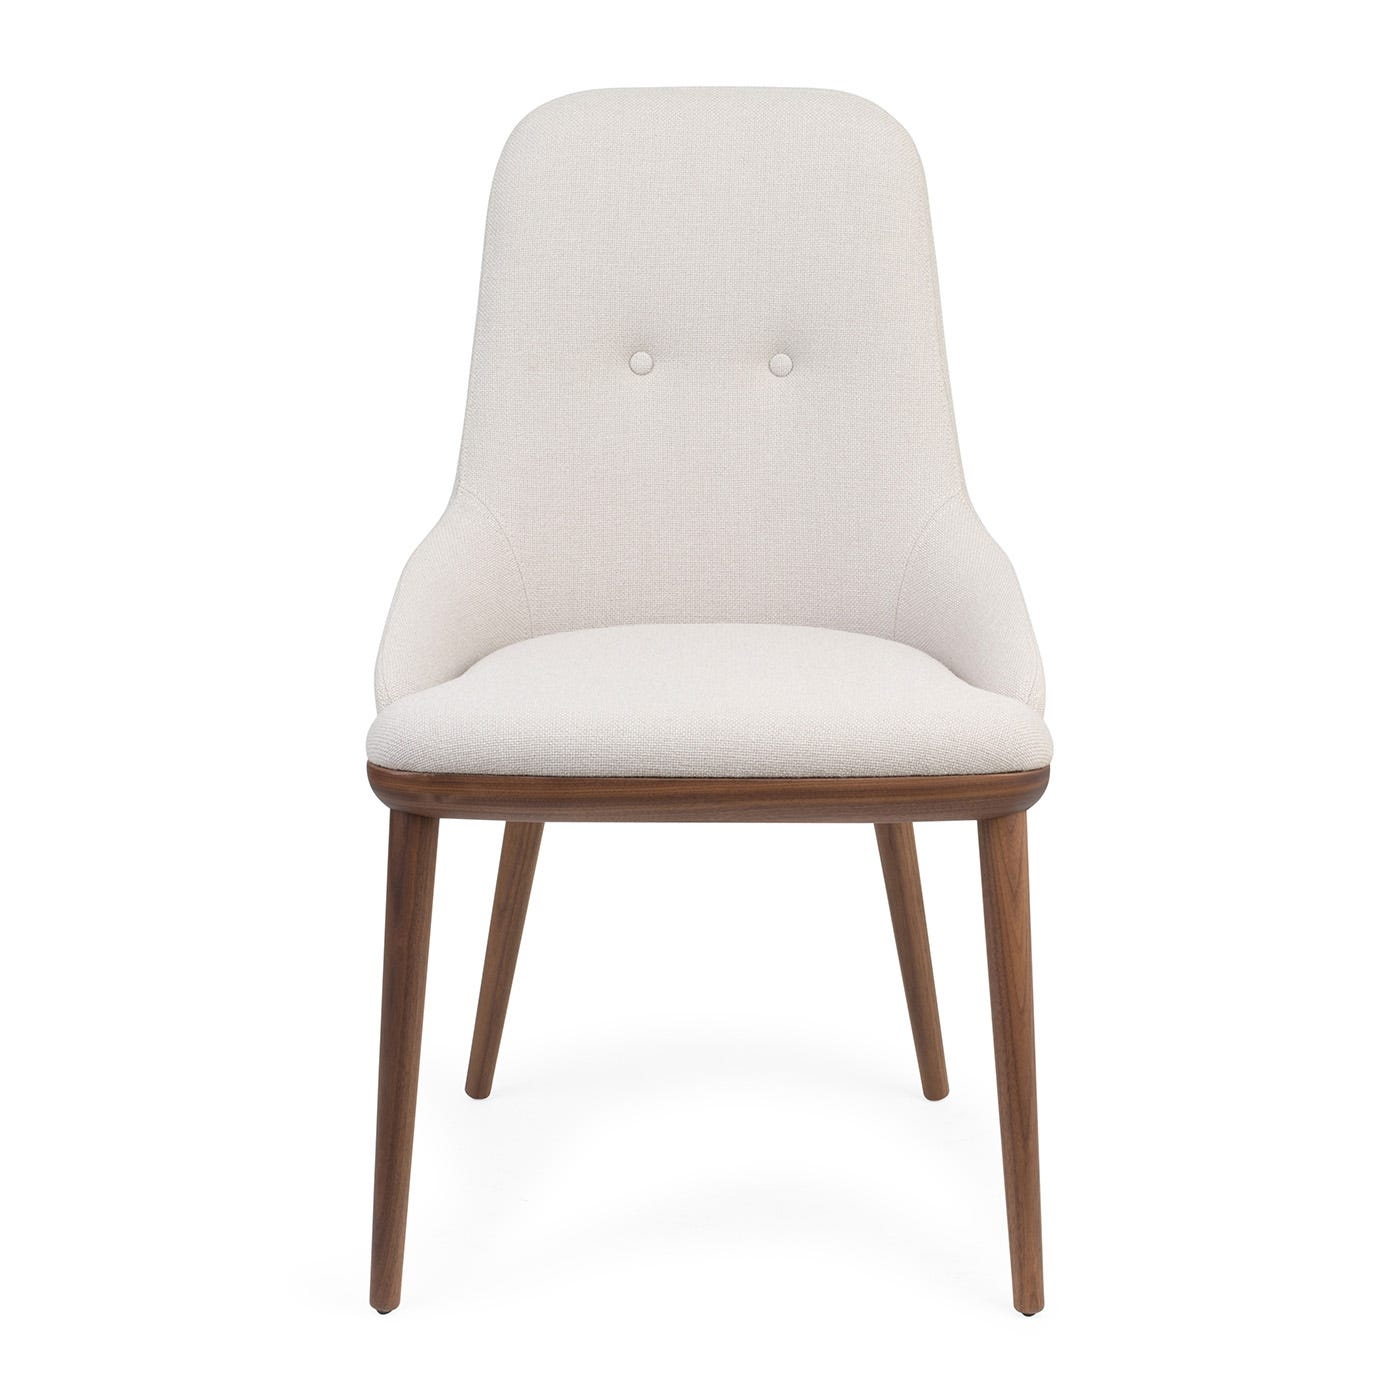 Connie Chair Walnut Stained Hallingdal 65/113